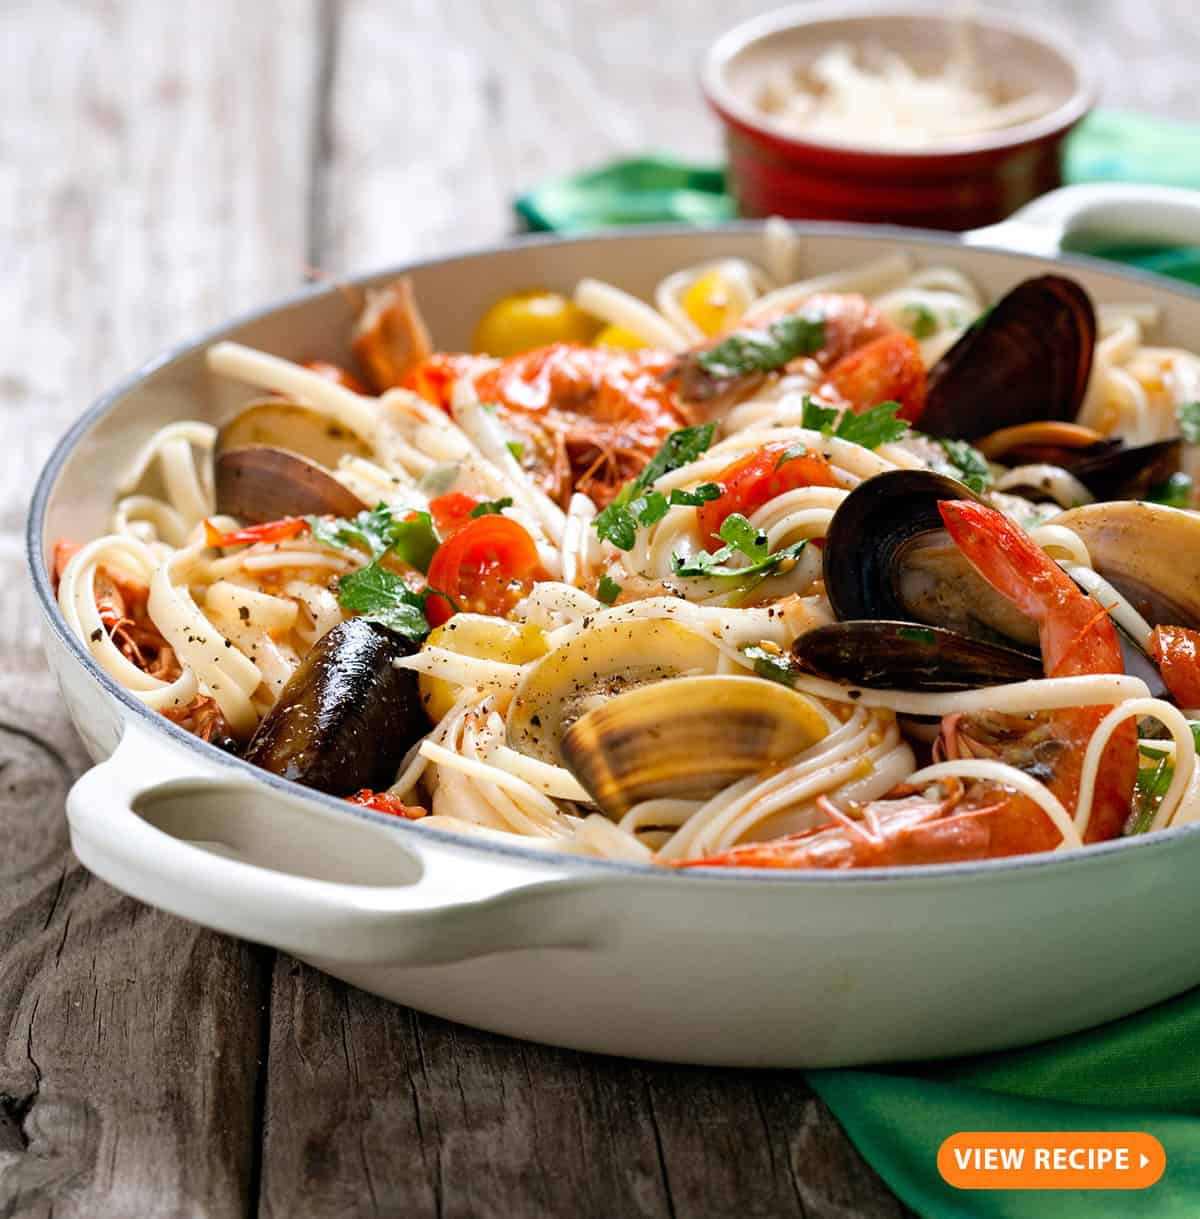 Italian seafood pasta with clams